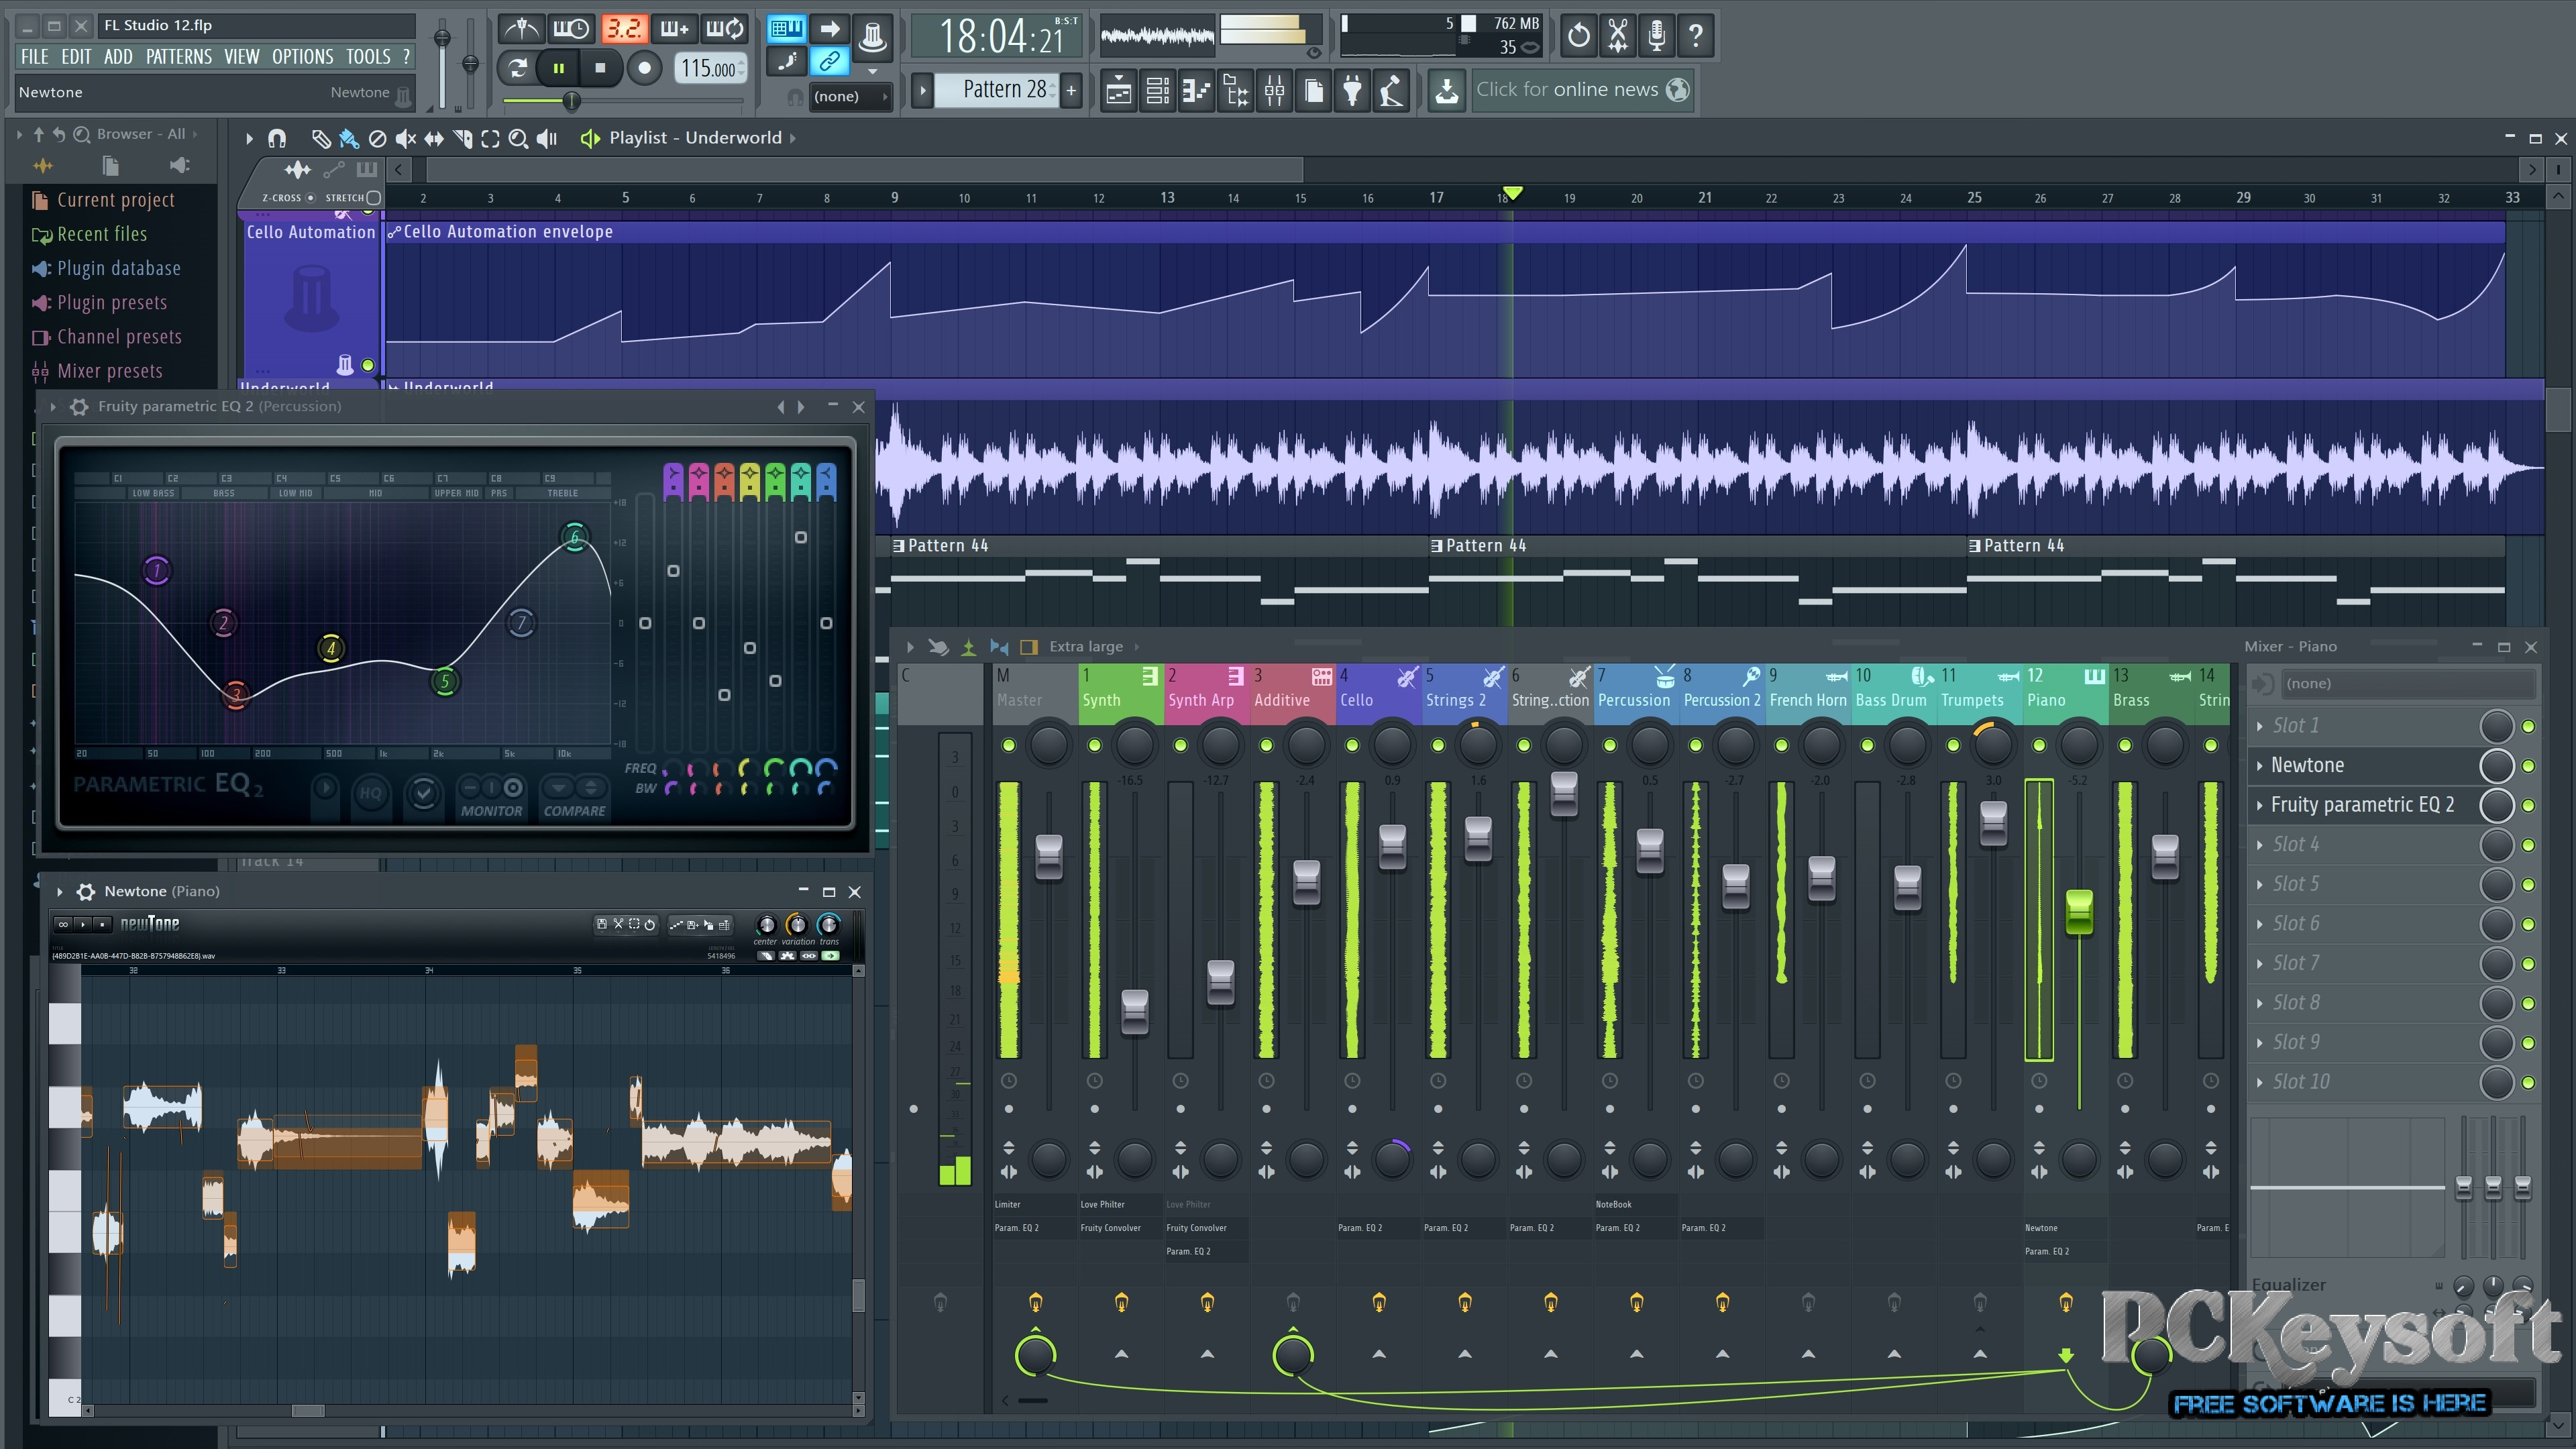 fl-studio-13-producer-edition-crack-download-full-version-pckeysoft-com